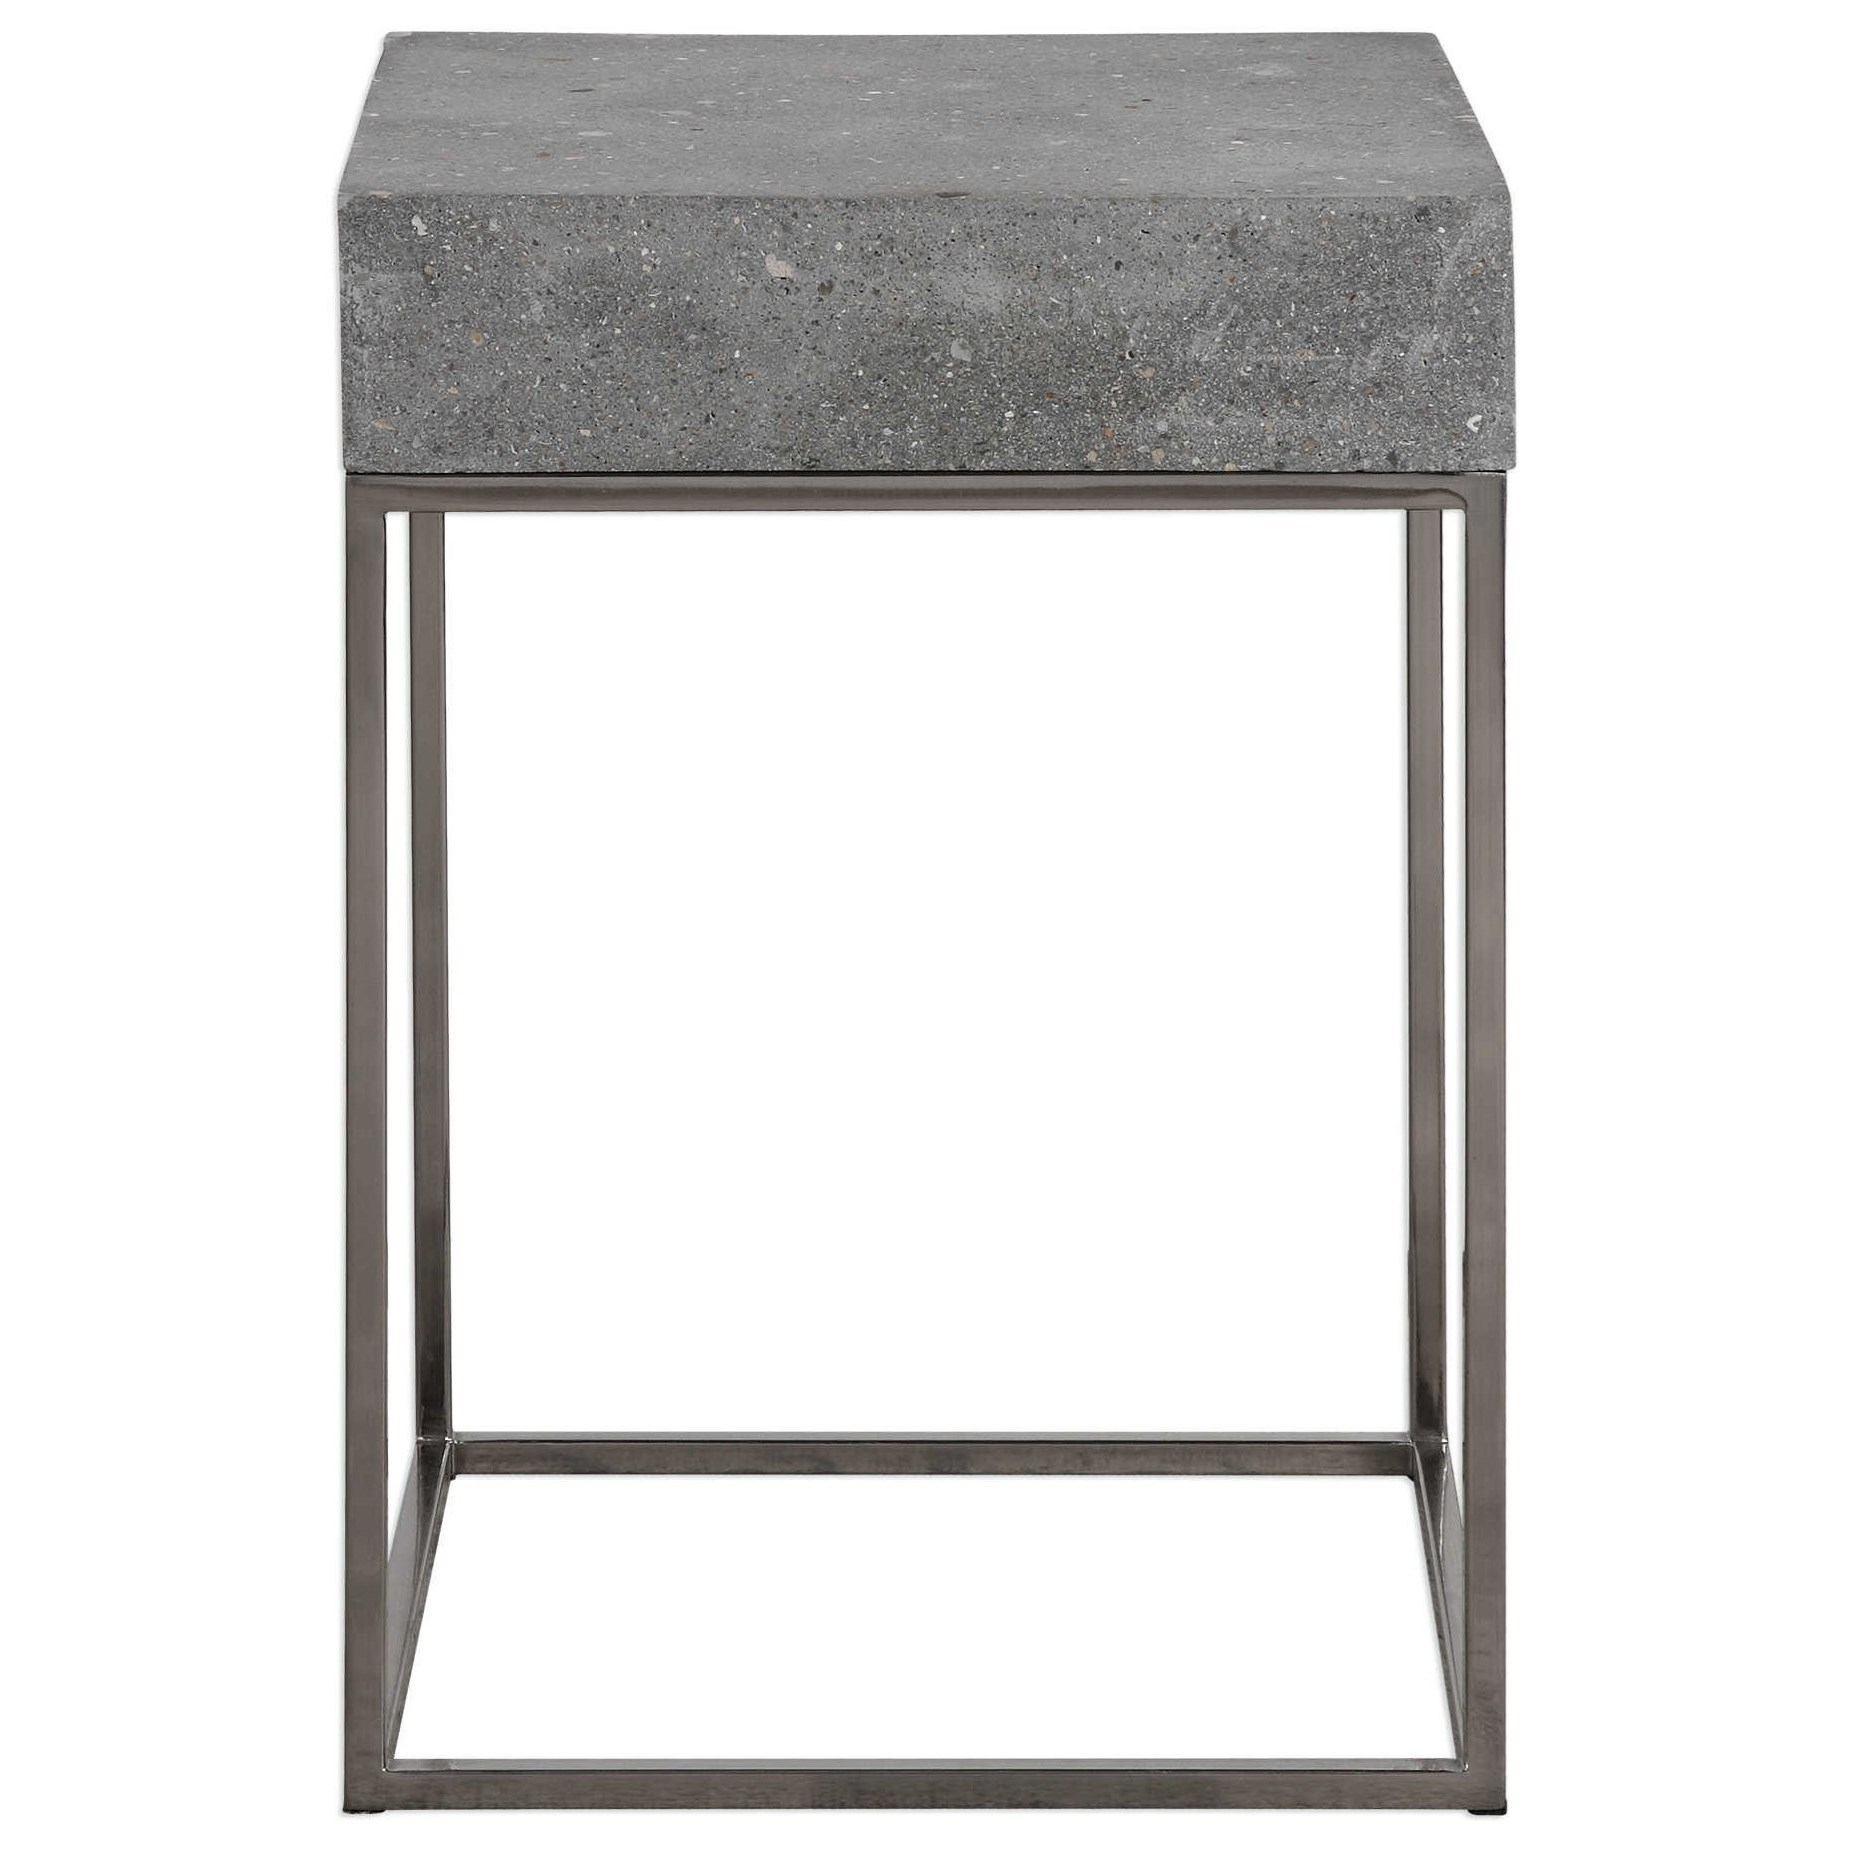 Accent Furniture - Occasional Tables Jude Concrete Accent Table by Uttermost at Dream Home Interiors